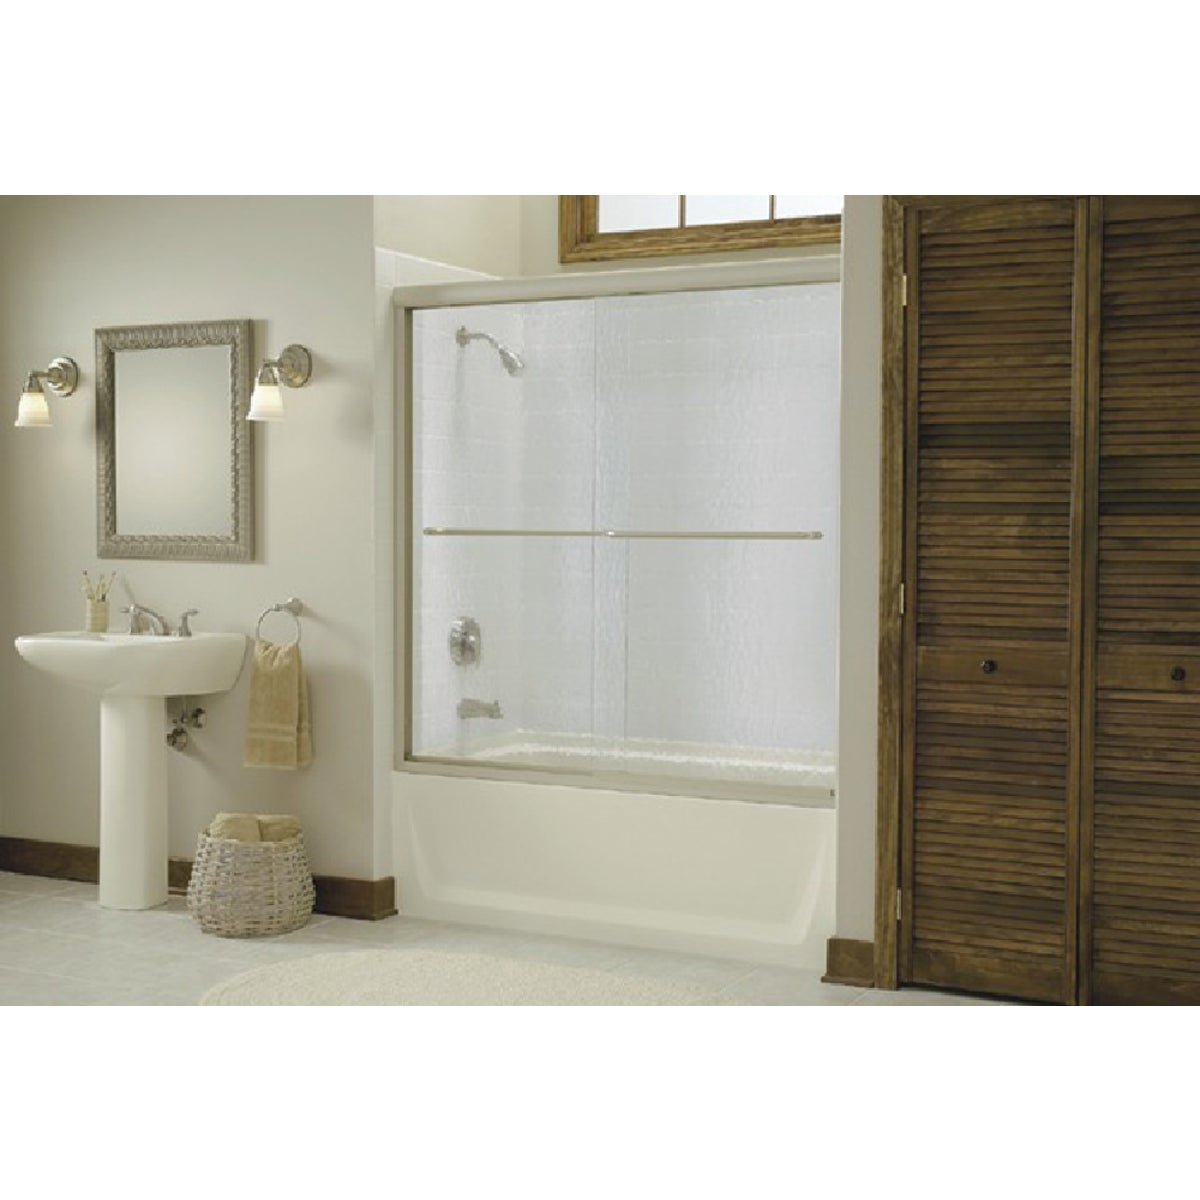 Sterling SILVER BY-PASS TUB DOOR 5425-59S-G05